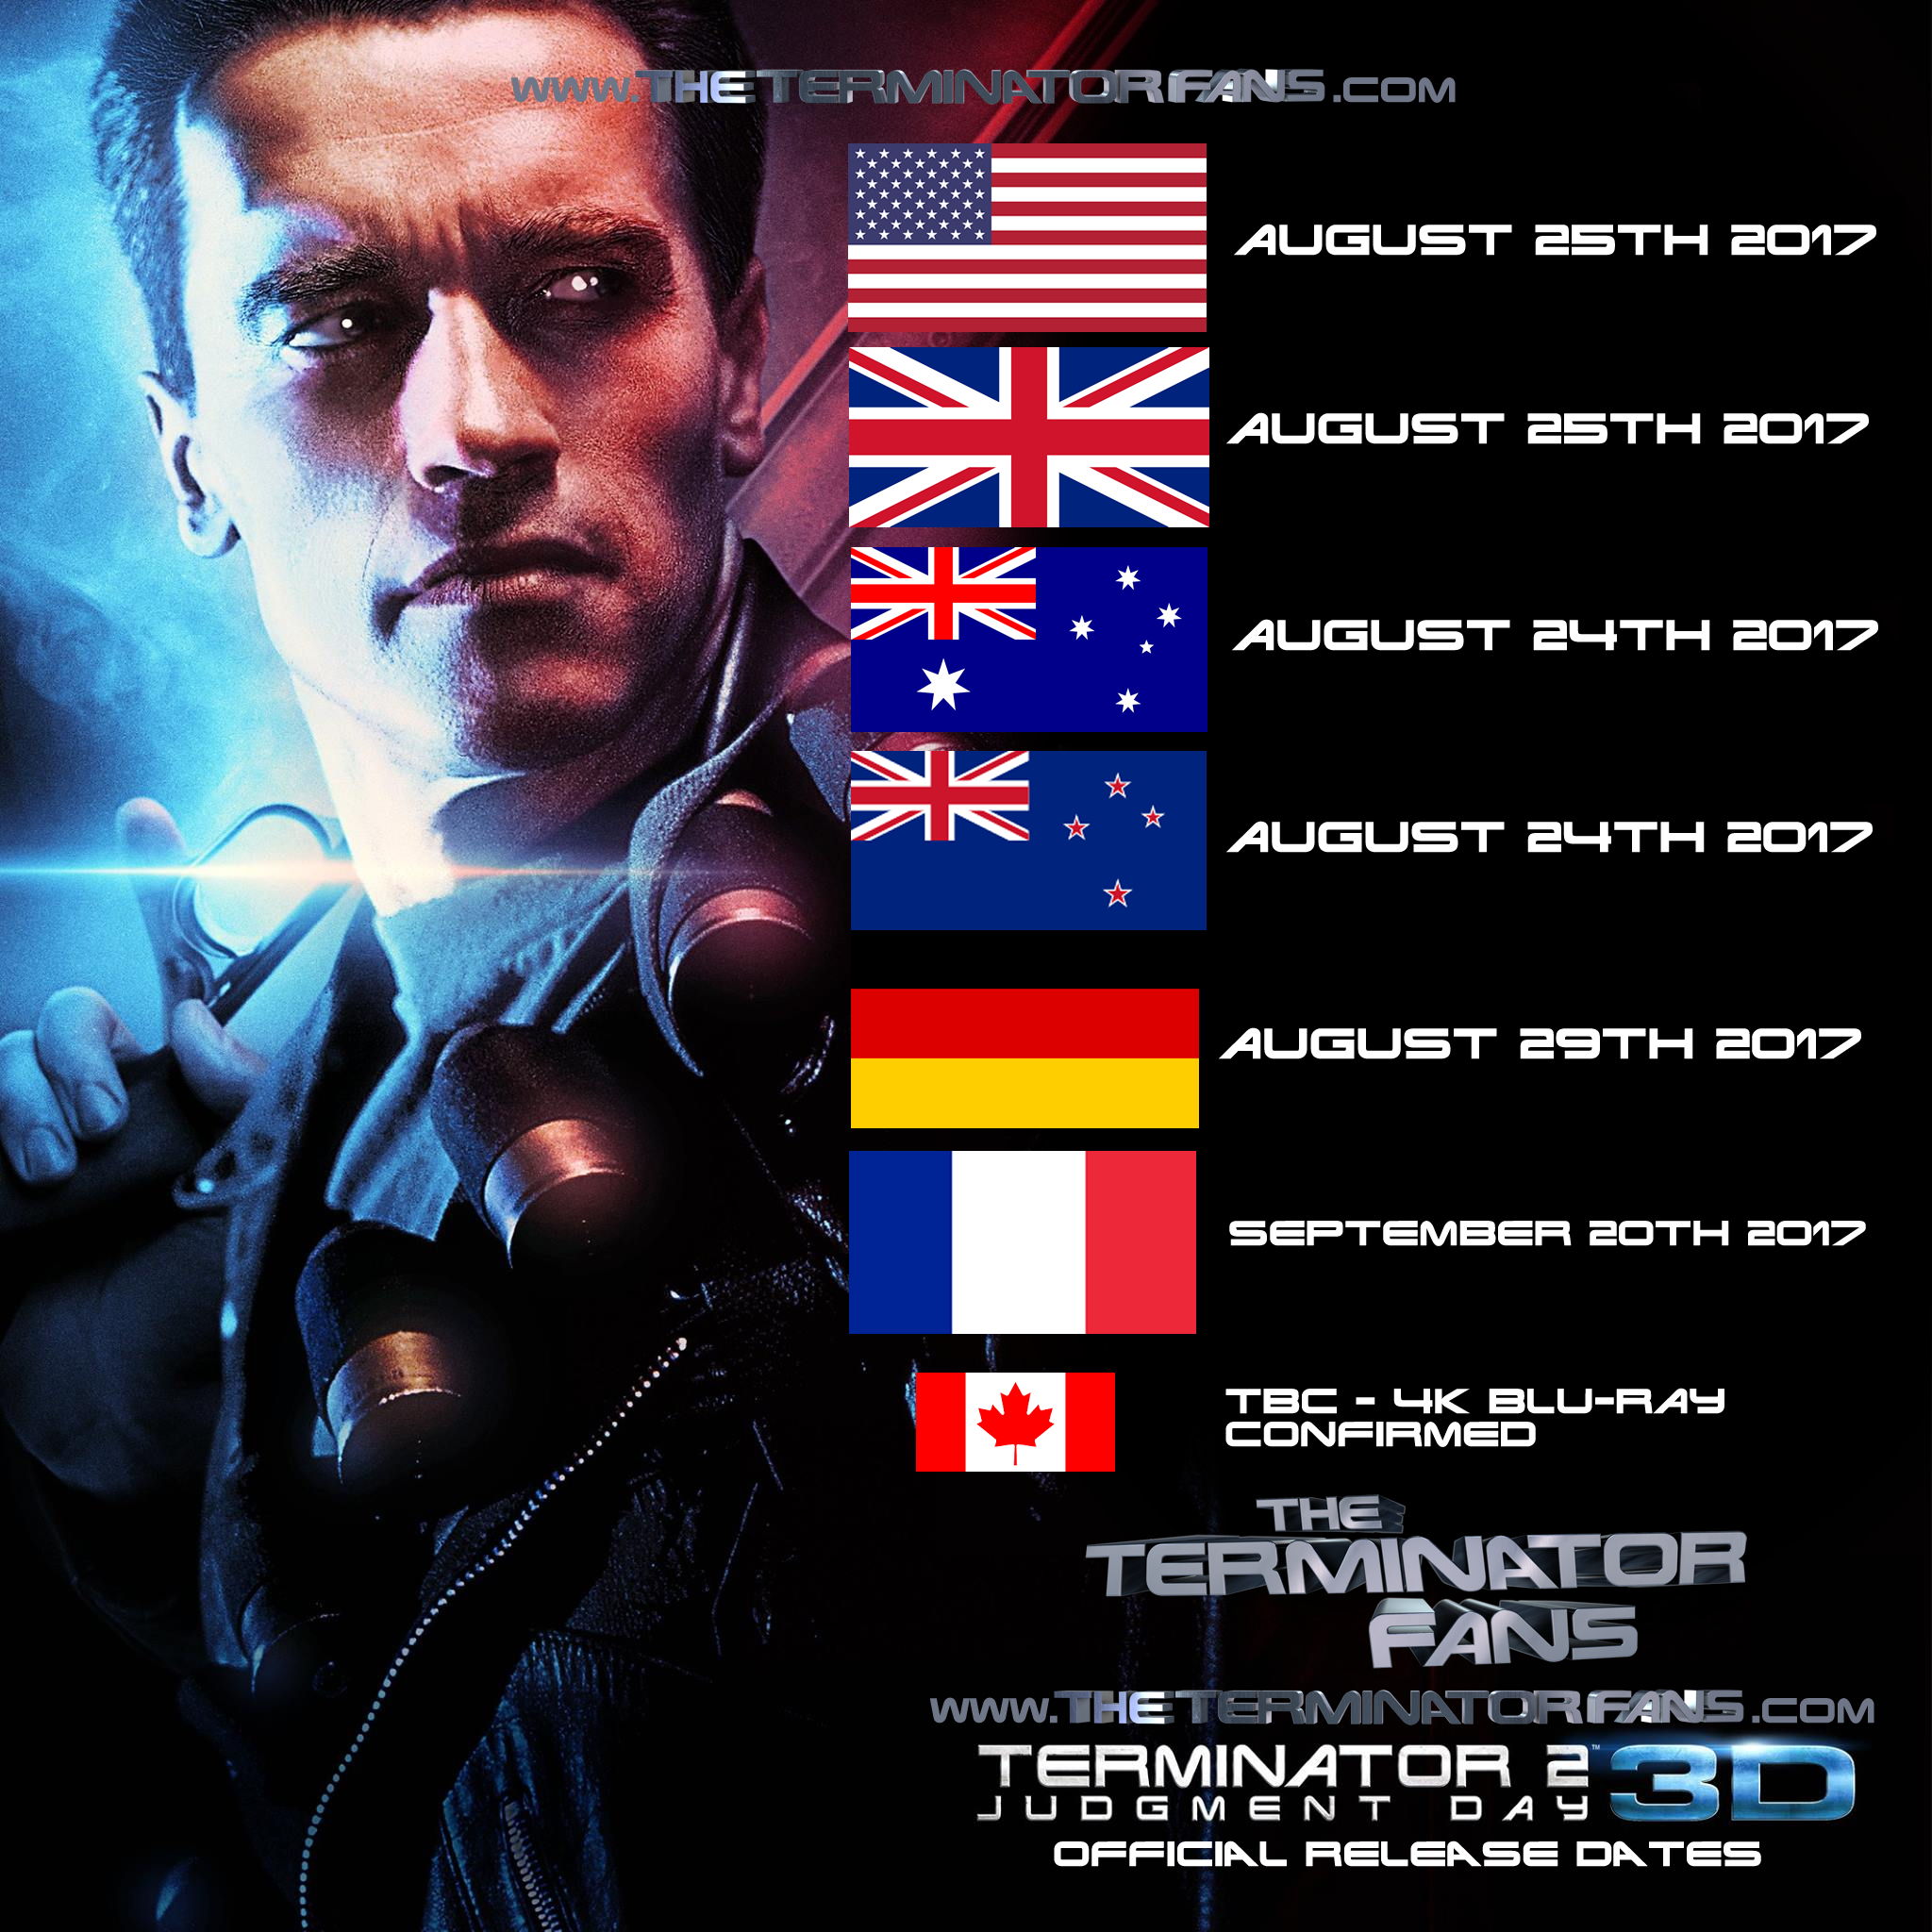 Terminator-2-3D-Official-Release-Dates.jpg